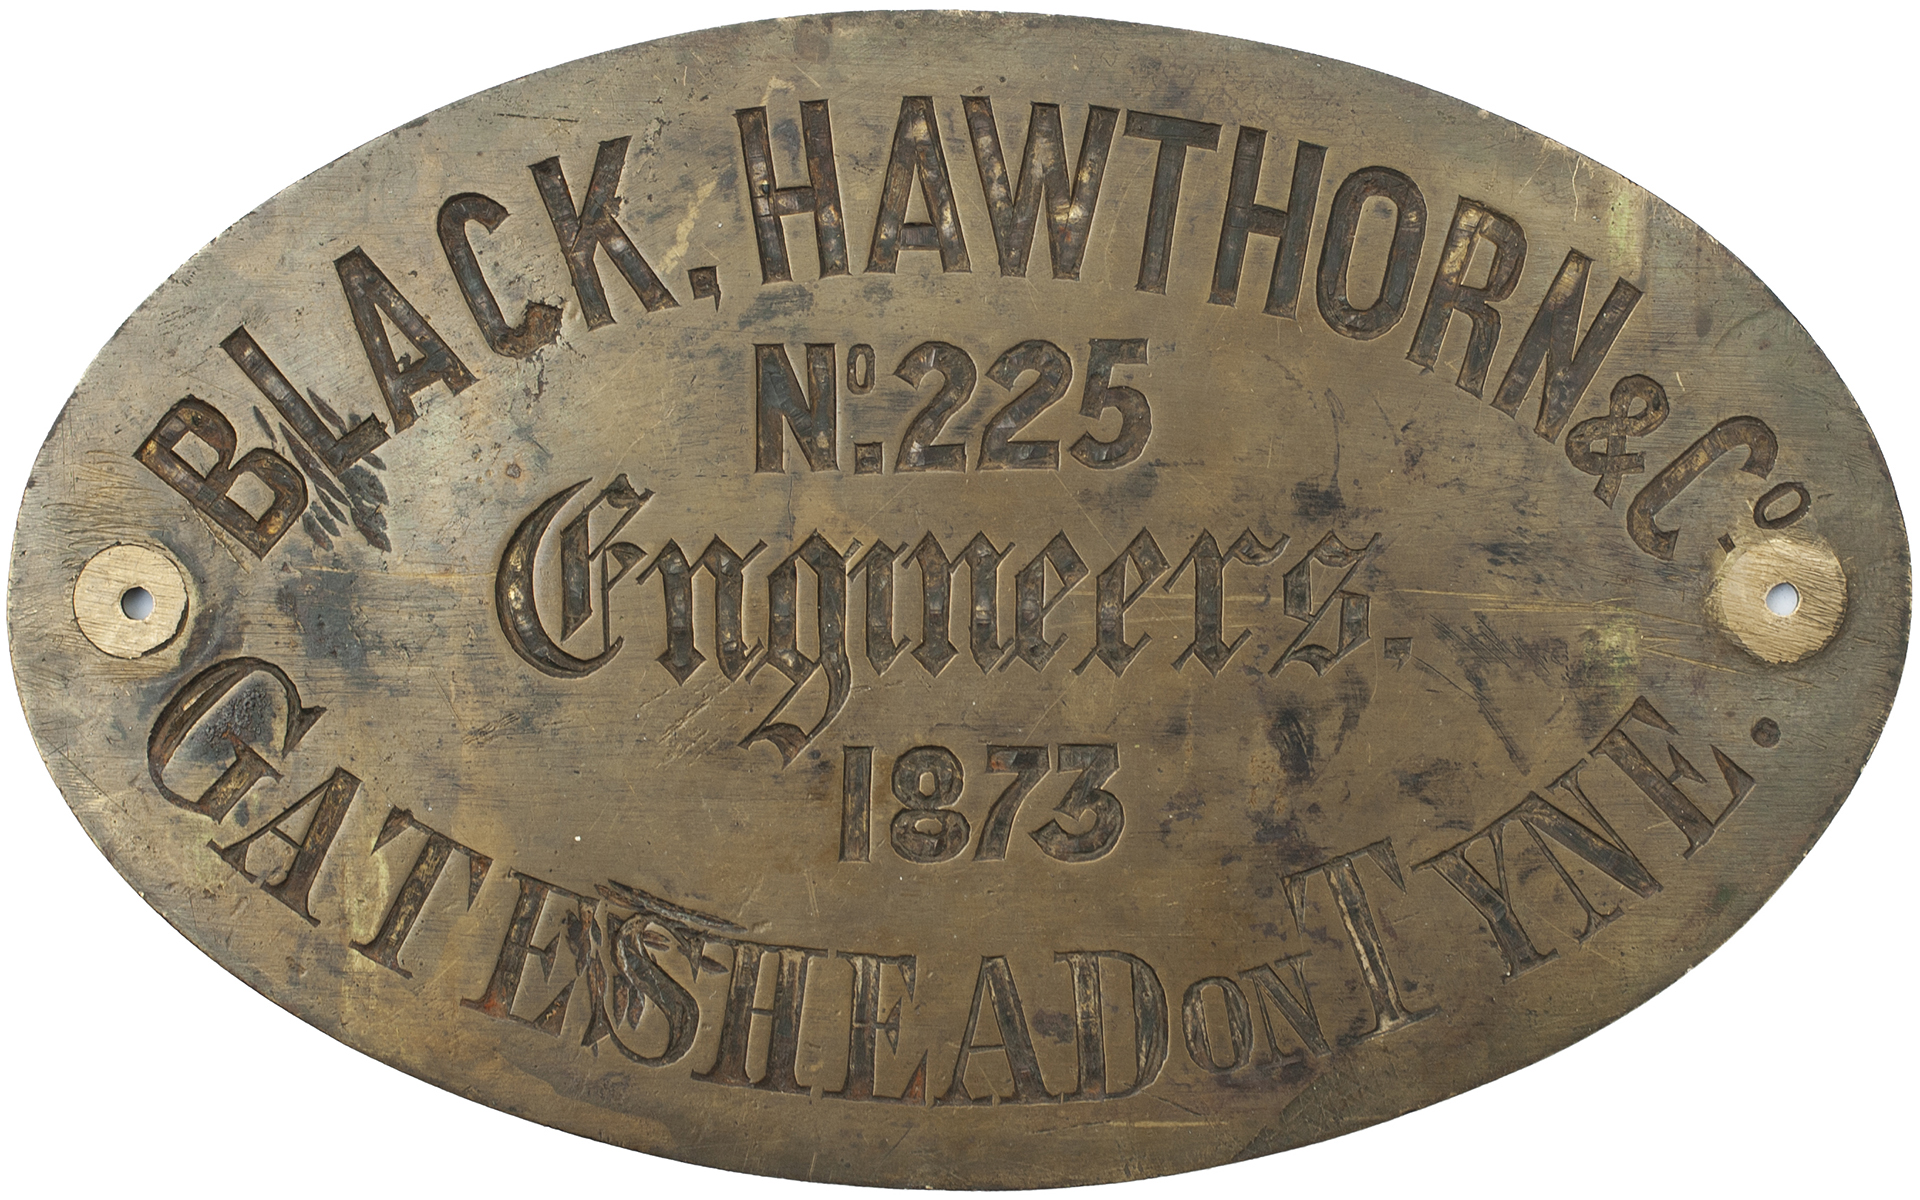 Worksplate BLACK HAWTHORN & Co ENGINEERS GATESHEAD ON TYNE No 225 1873. Ex 4-4-0T supplied to the